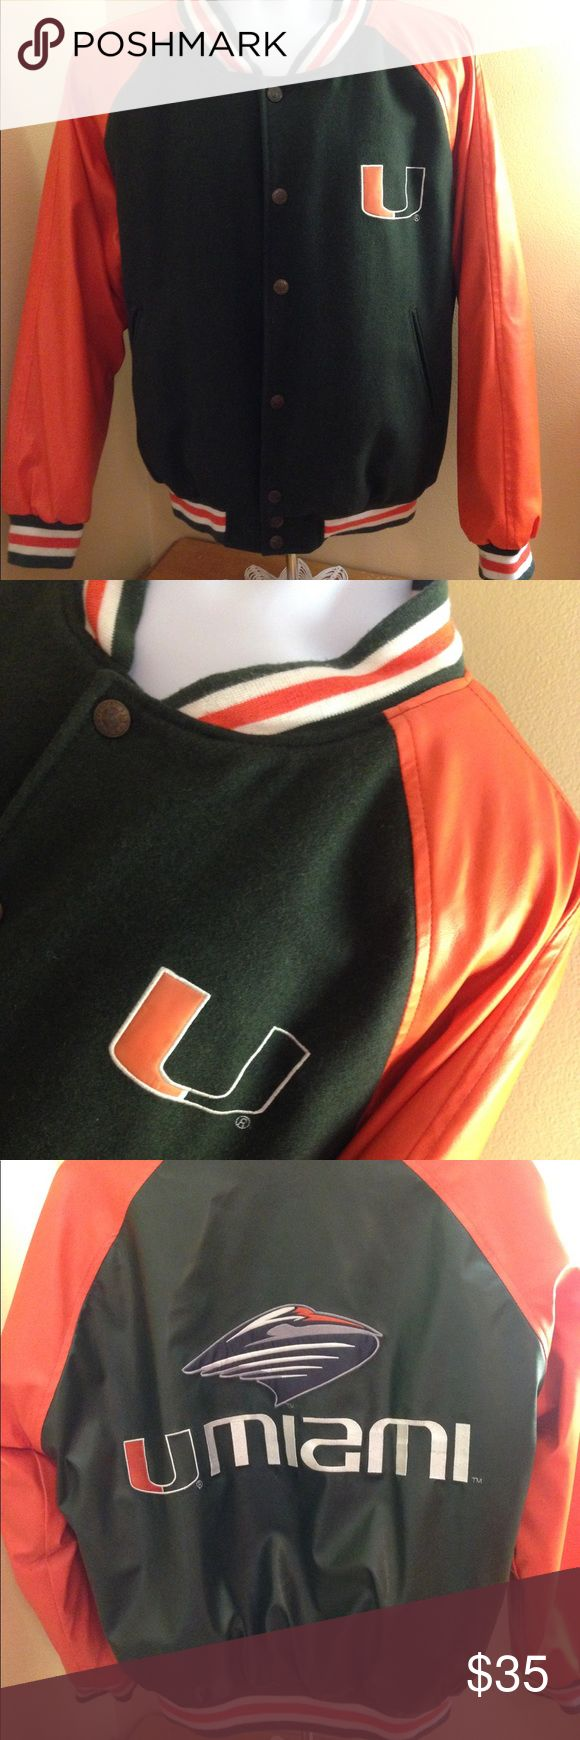 "University of Miami Jacket Sz M University of Miami Jacket Sz M in great preowned condition. Armpit to armpit 24"", arms 19"". Button up  jacket by Steve and Barry. See all pics! Steve & Barry's Jackets & Coats Bomber & Varsity"